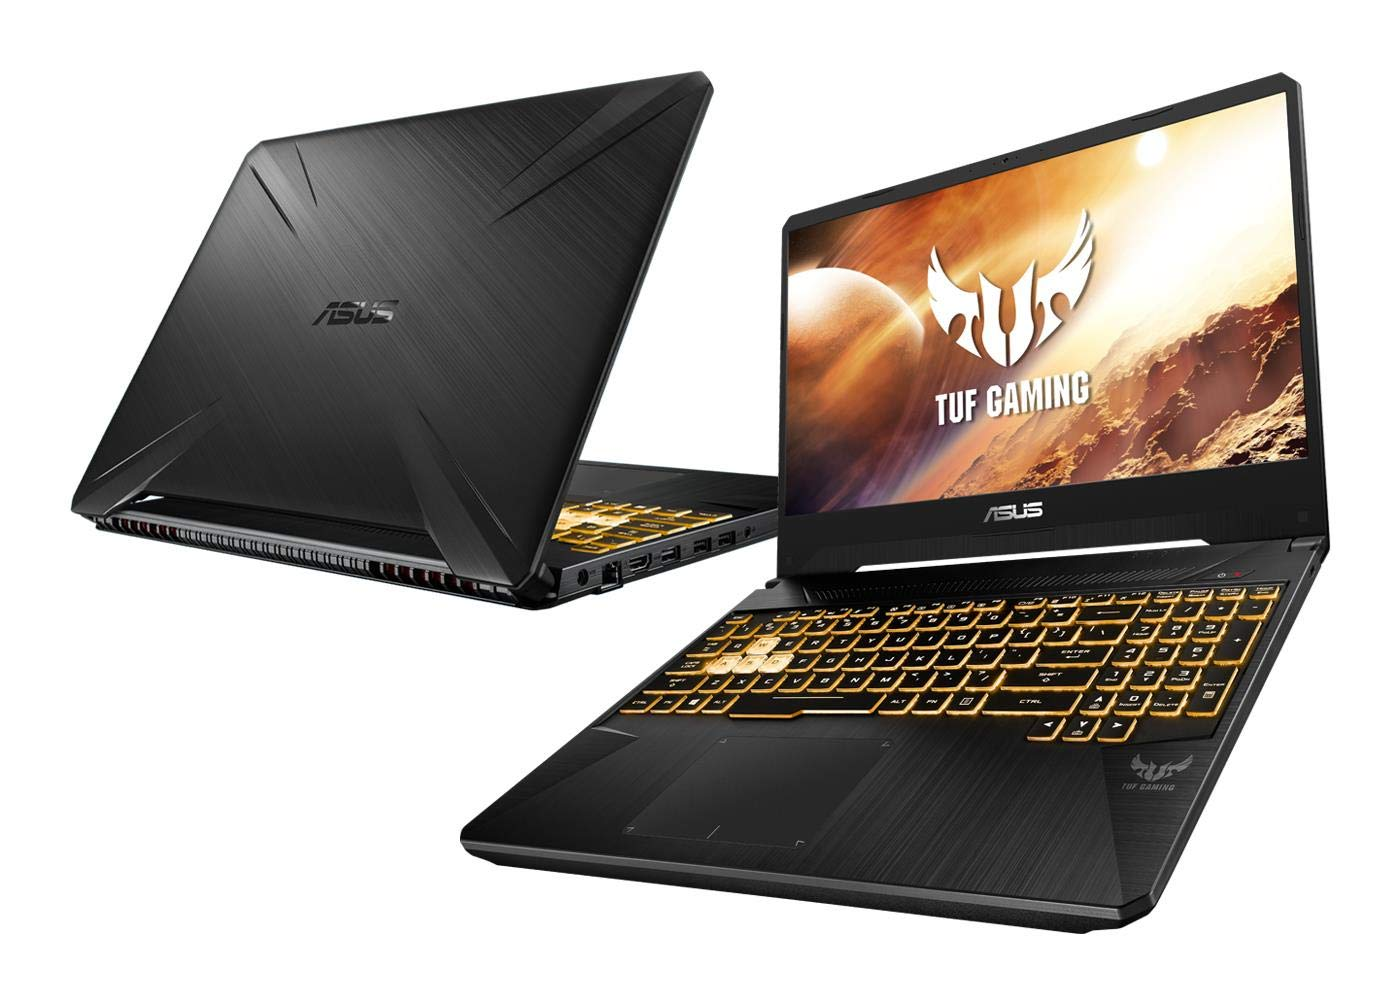 Best Ryzen 7 Gaming Laptops with Rtx 2060 in India 2021